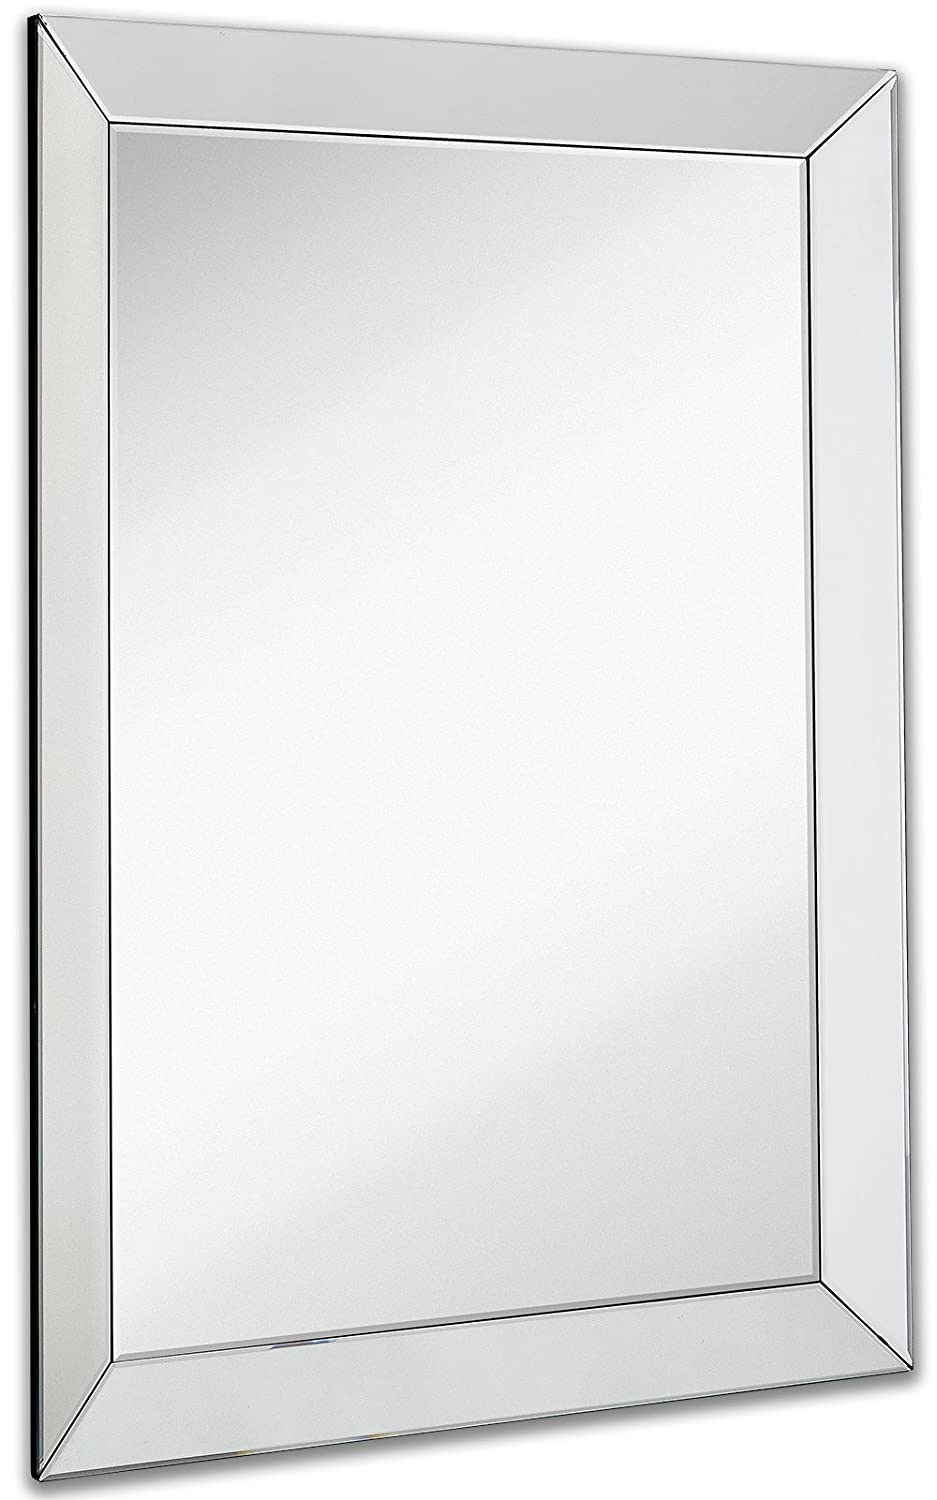 Bathroom mirrors framed 40 inch - Amazon Com Large Framed Wall Mirror With 3 Inch Angled Beveled Mirror Frame Premium Silver Backed Glass Panel Vanity Bedroom Or Bathroom Mirrored